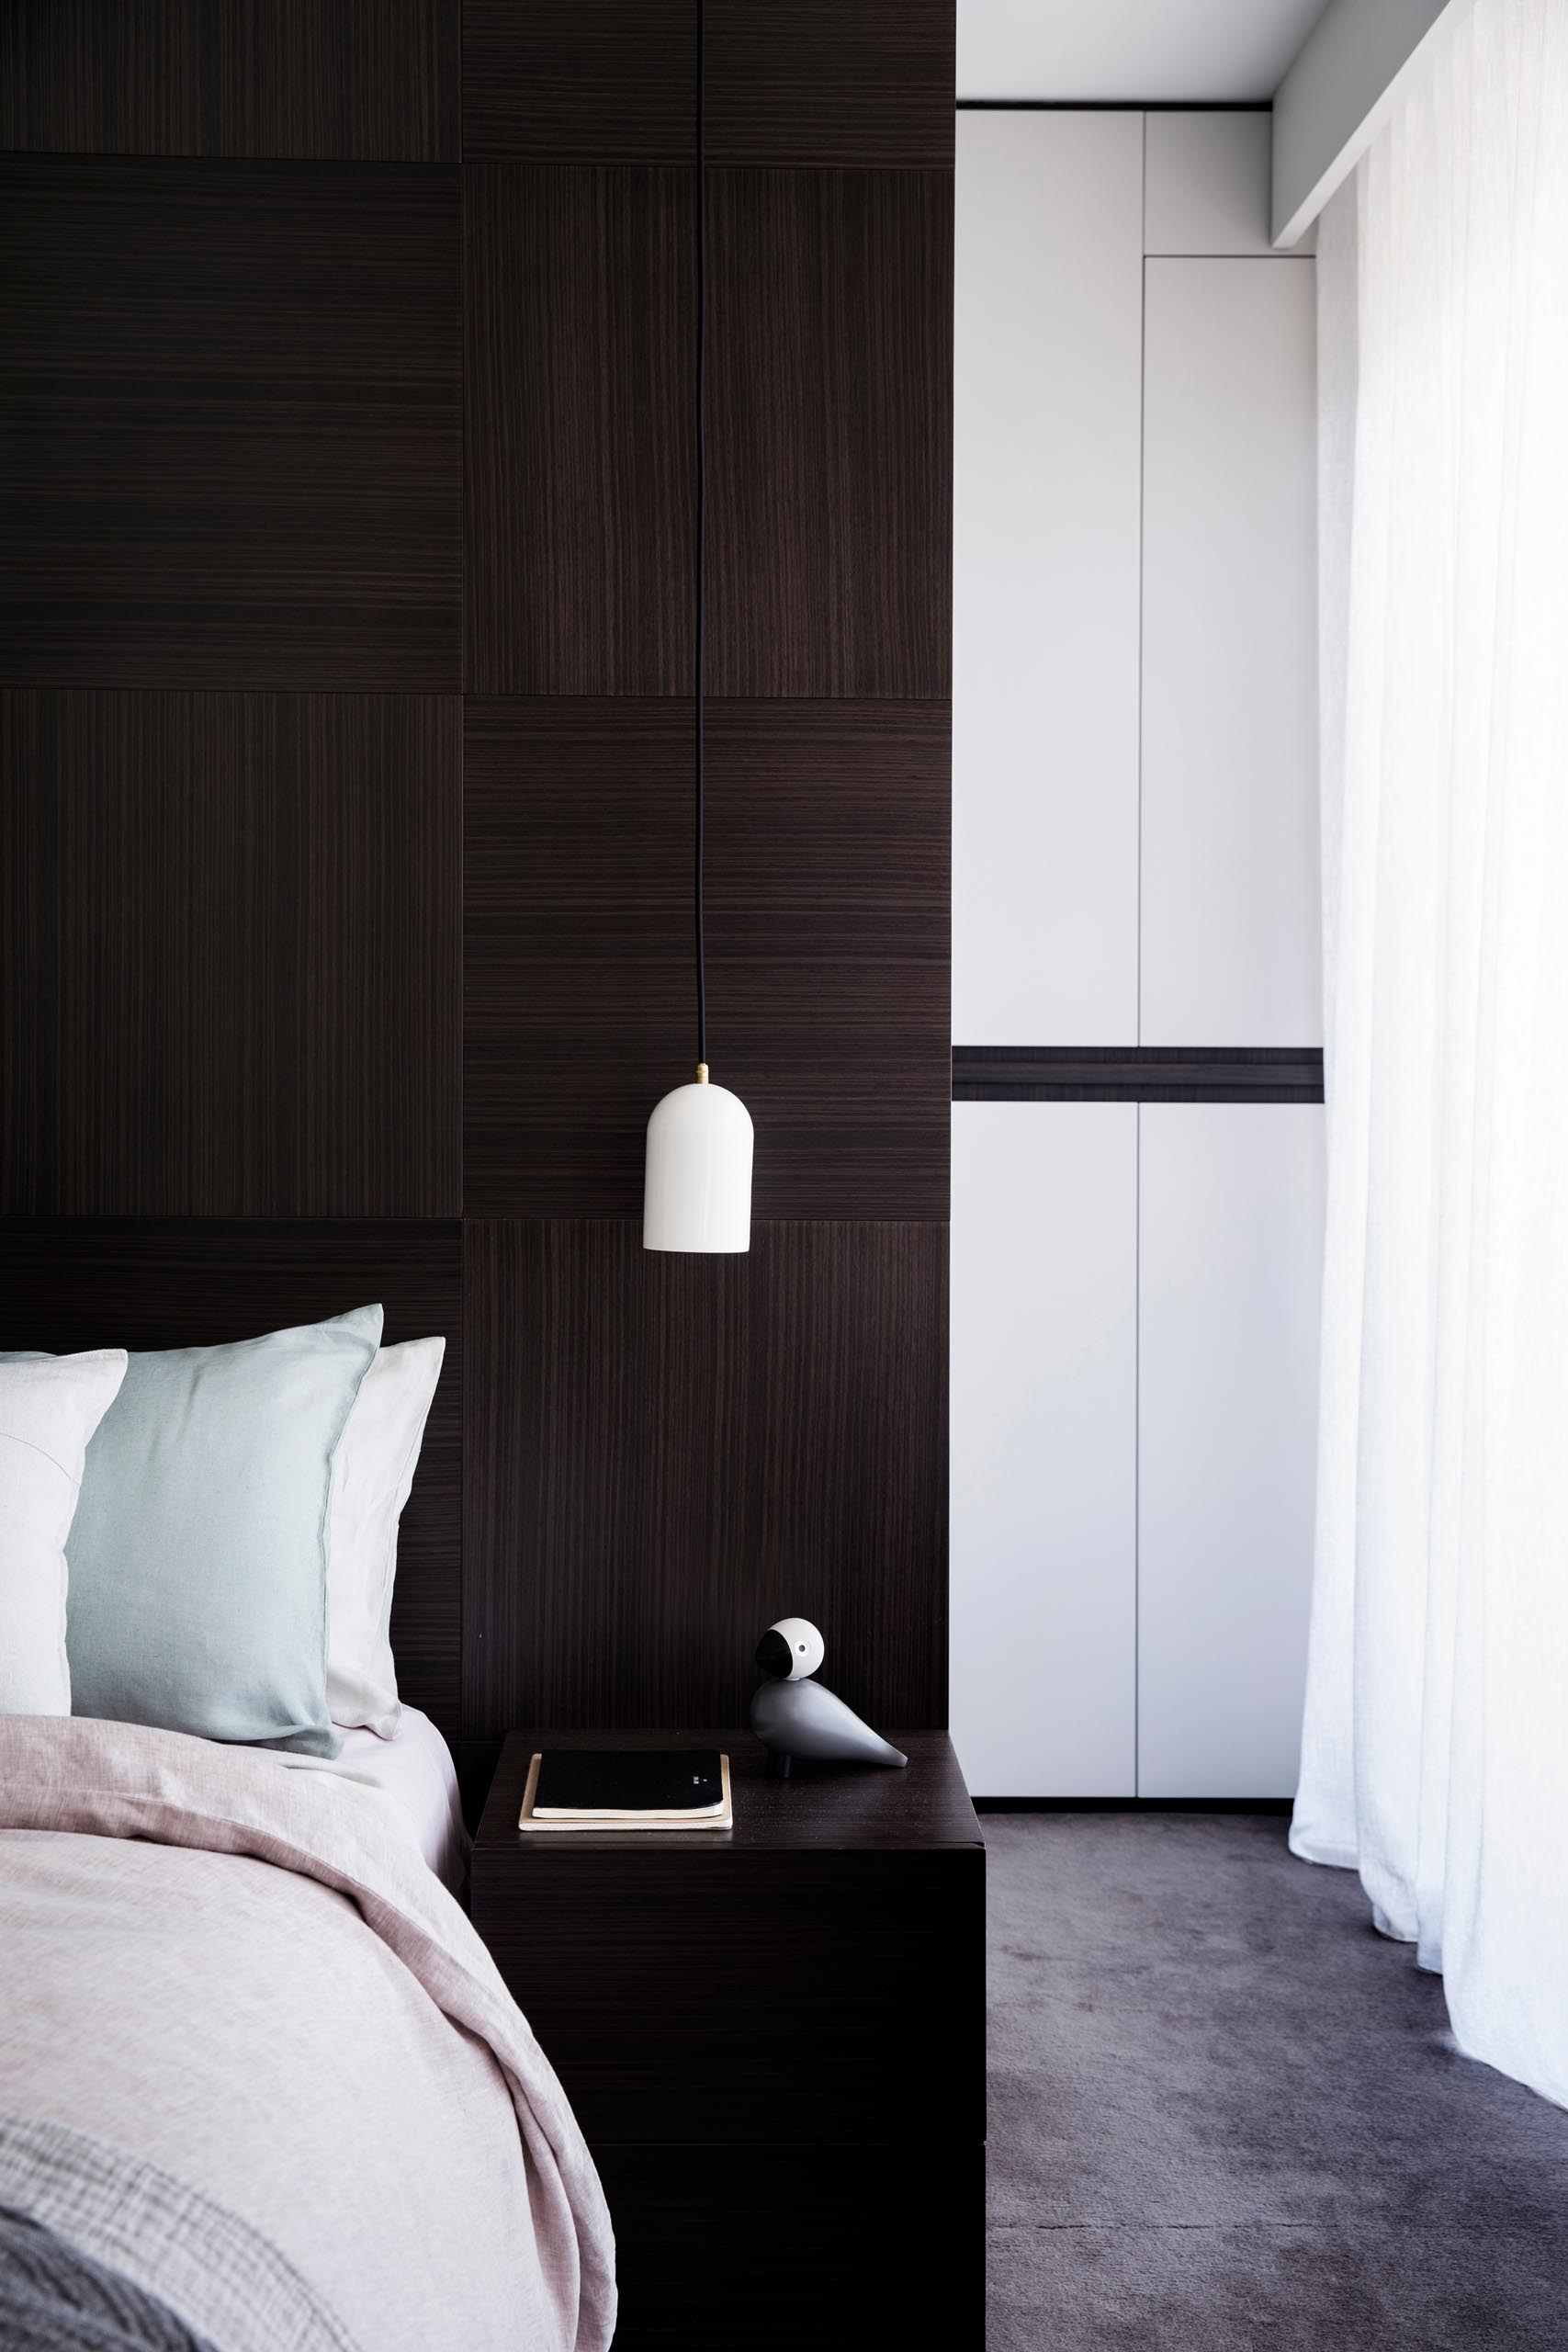 A modern master bedroom with a dark wood accent wall and a walk-through closet.